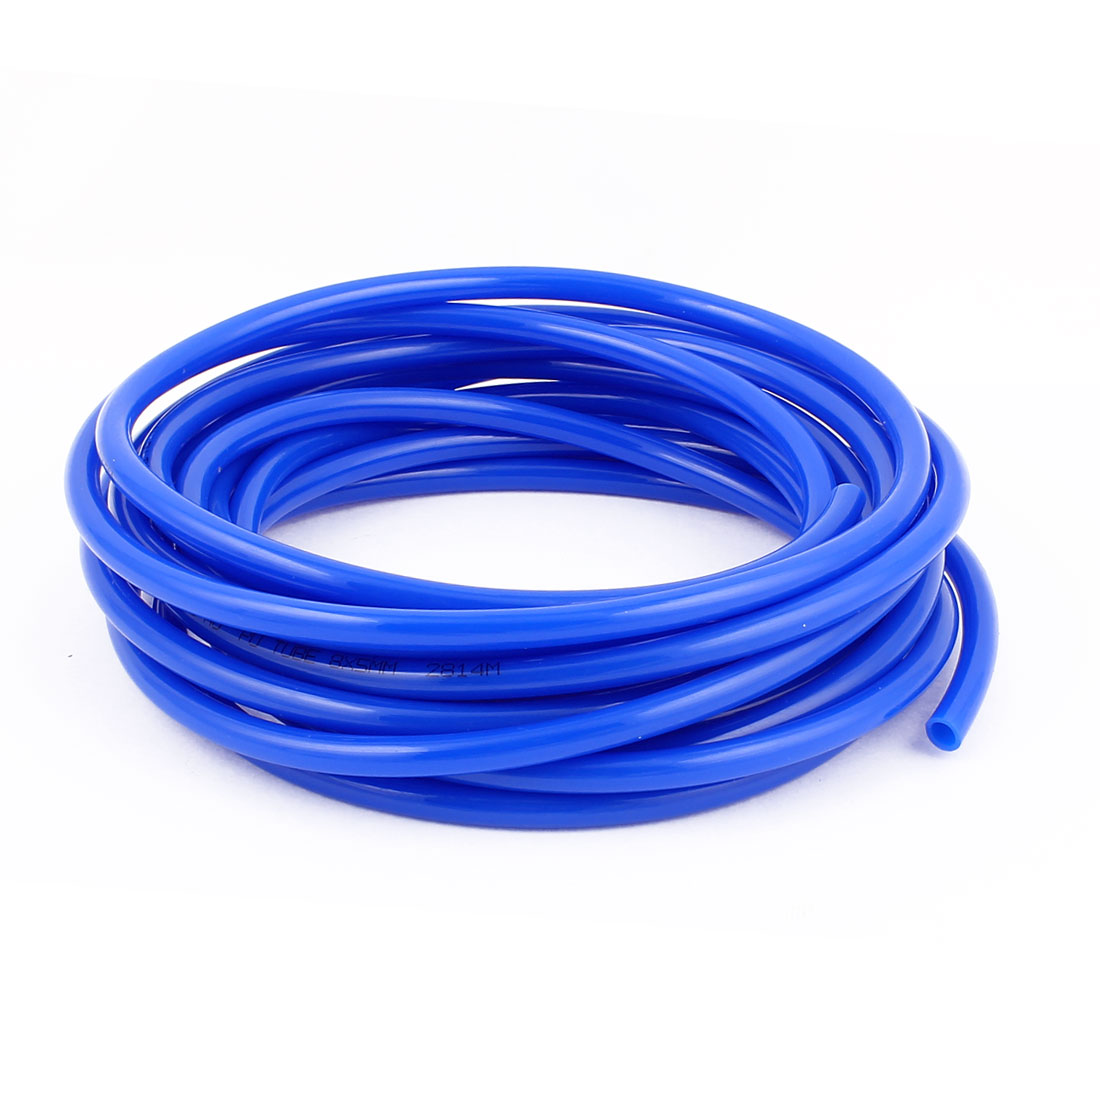 6.8m 8*5MM Polyurethane Tube PU Air Compressor Hose Pneumatics Plastic Blue